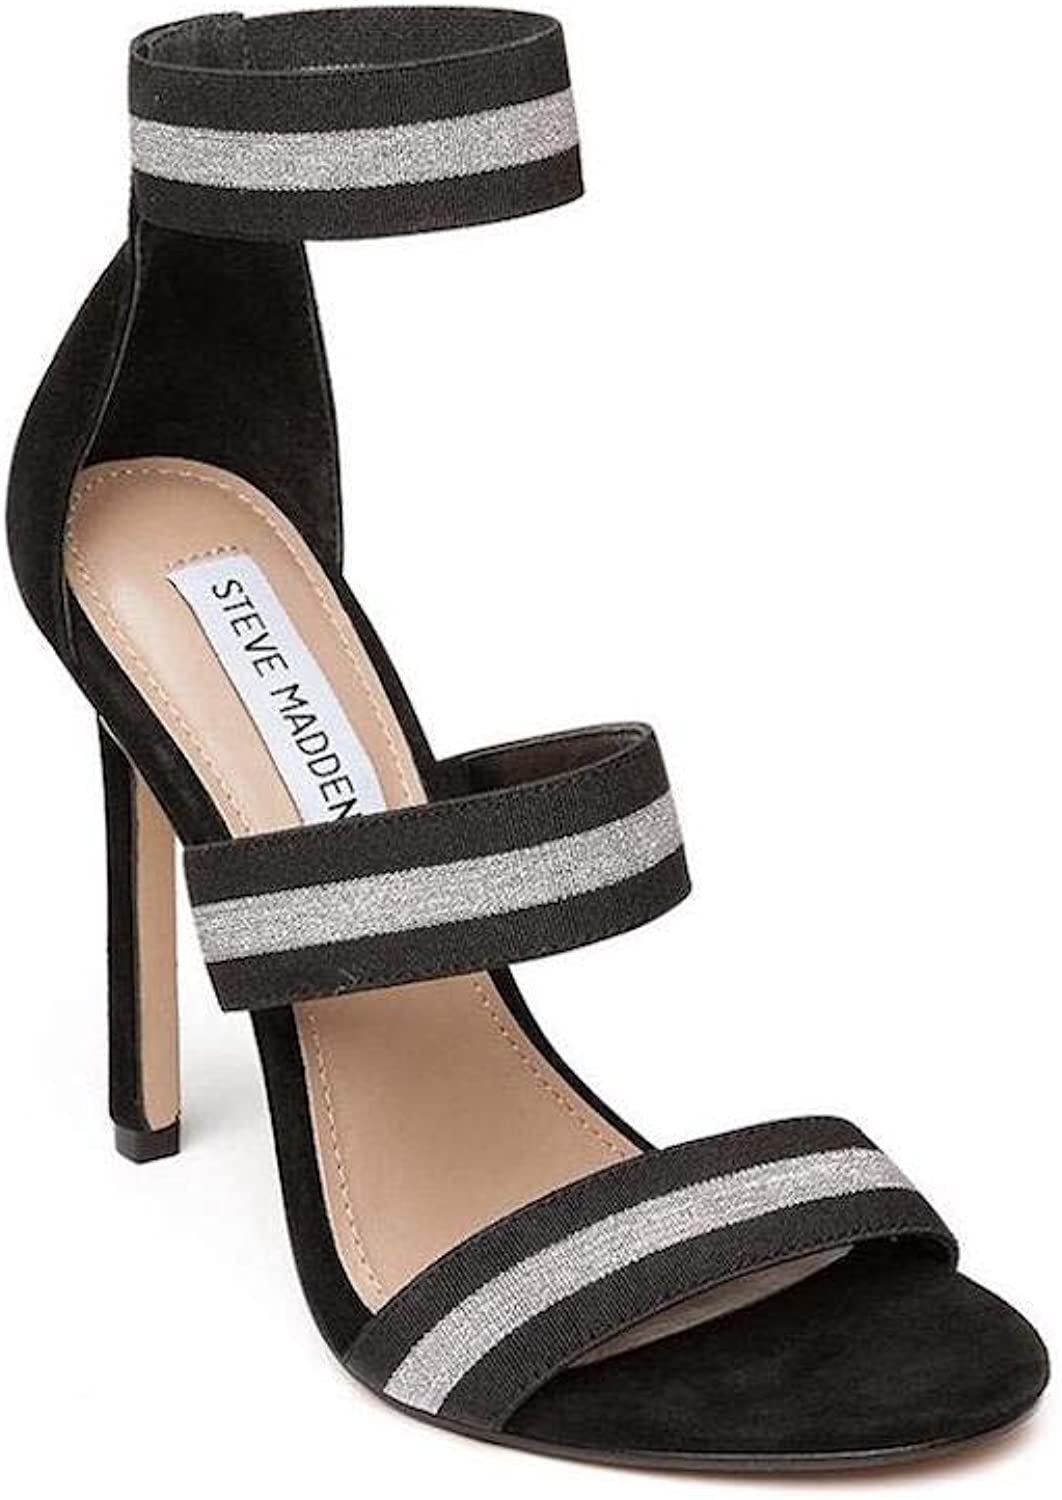 Steve Madden Womens Crave Open Toe Special Occasion Ankle Strap Sandals